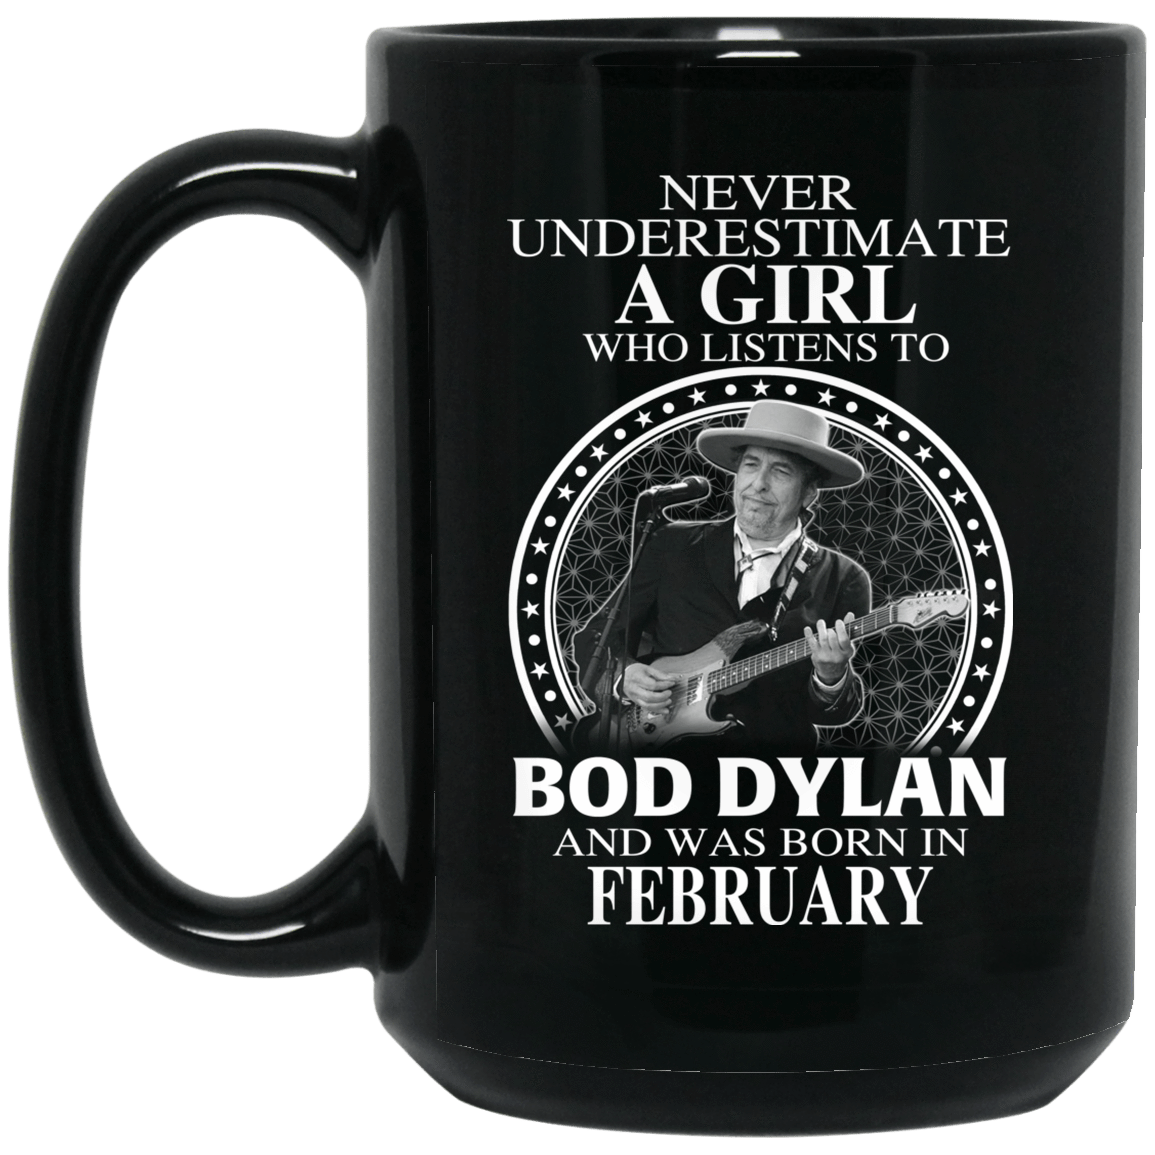 A Girl Who Listens To Bob Dylan And Was Born In February Mug 1066-10182-76154841-49311 - Tee Ript